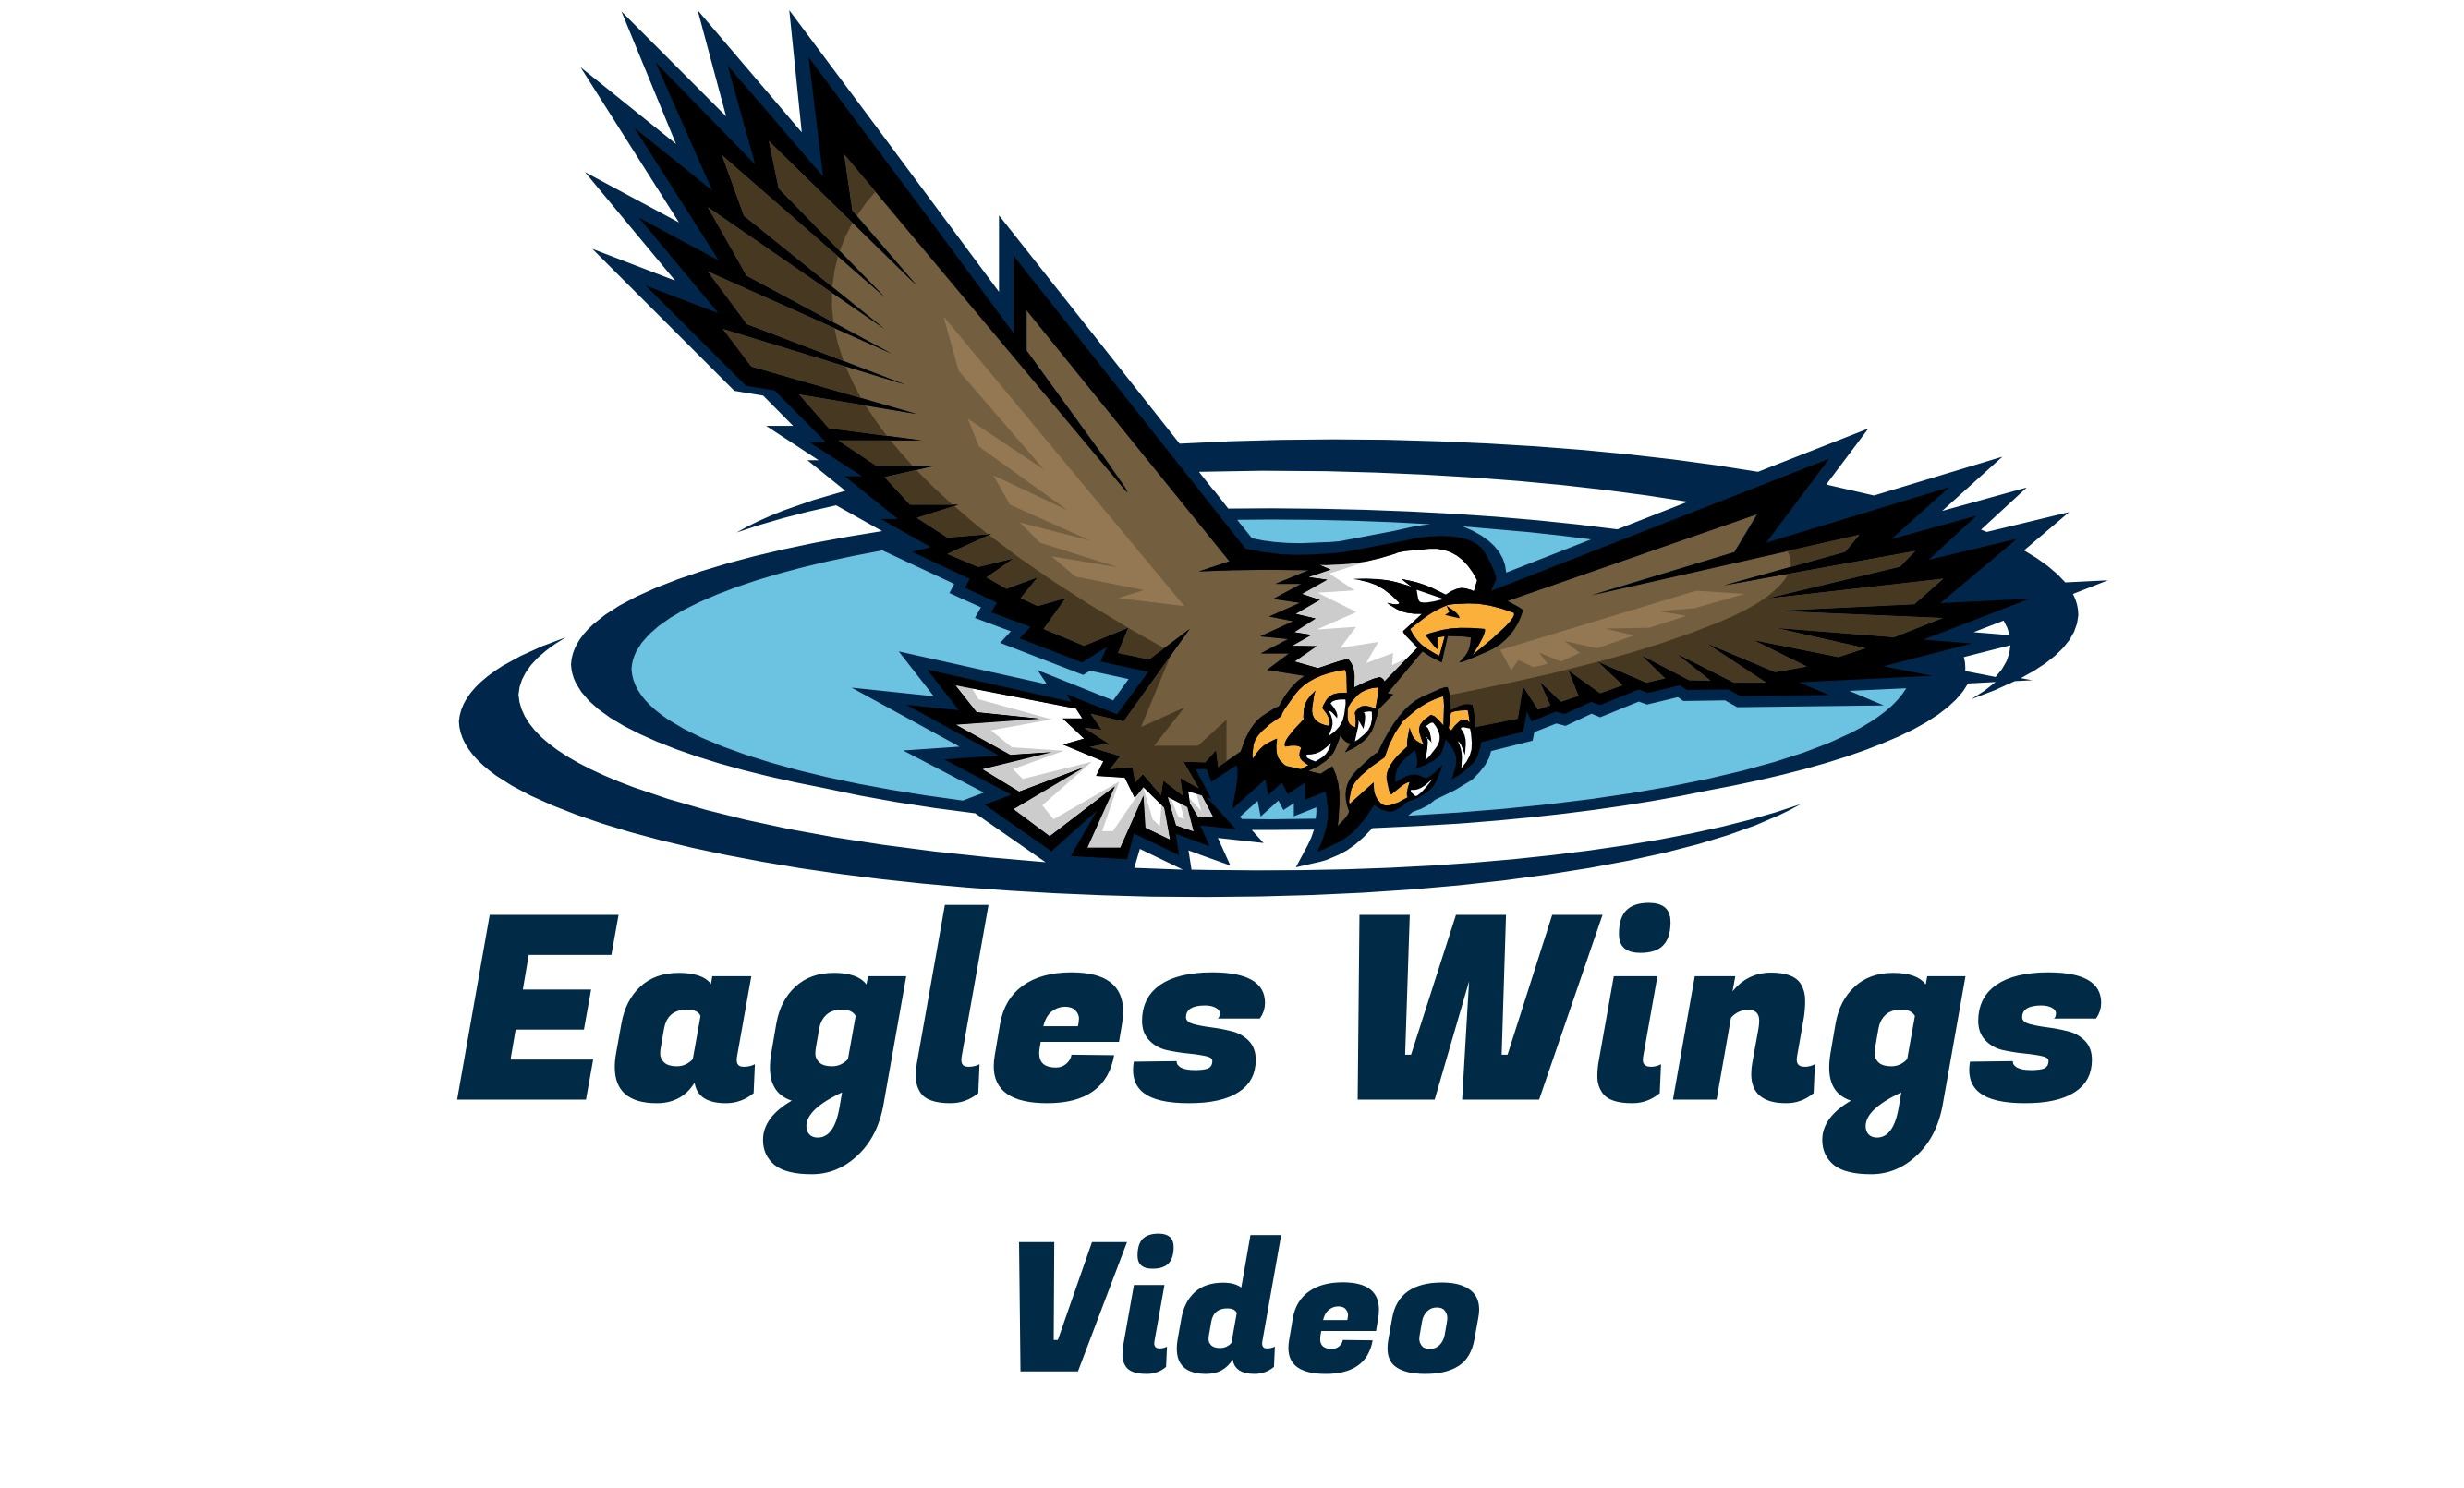 Eagles Wings Video Eagle Wing Diagram Of Bald If You Own A Business We Can Produce Marketing To Your Specifications Here Are Some Recent Examples